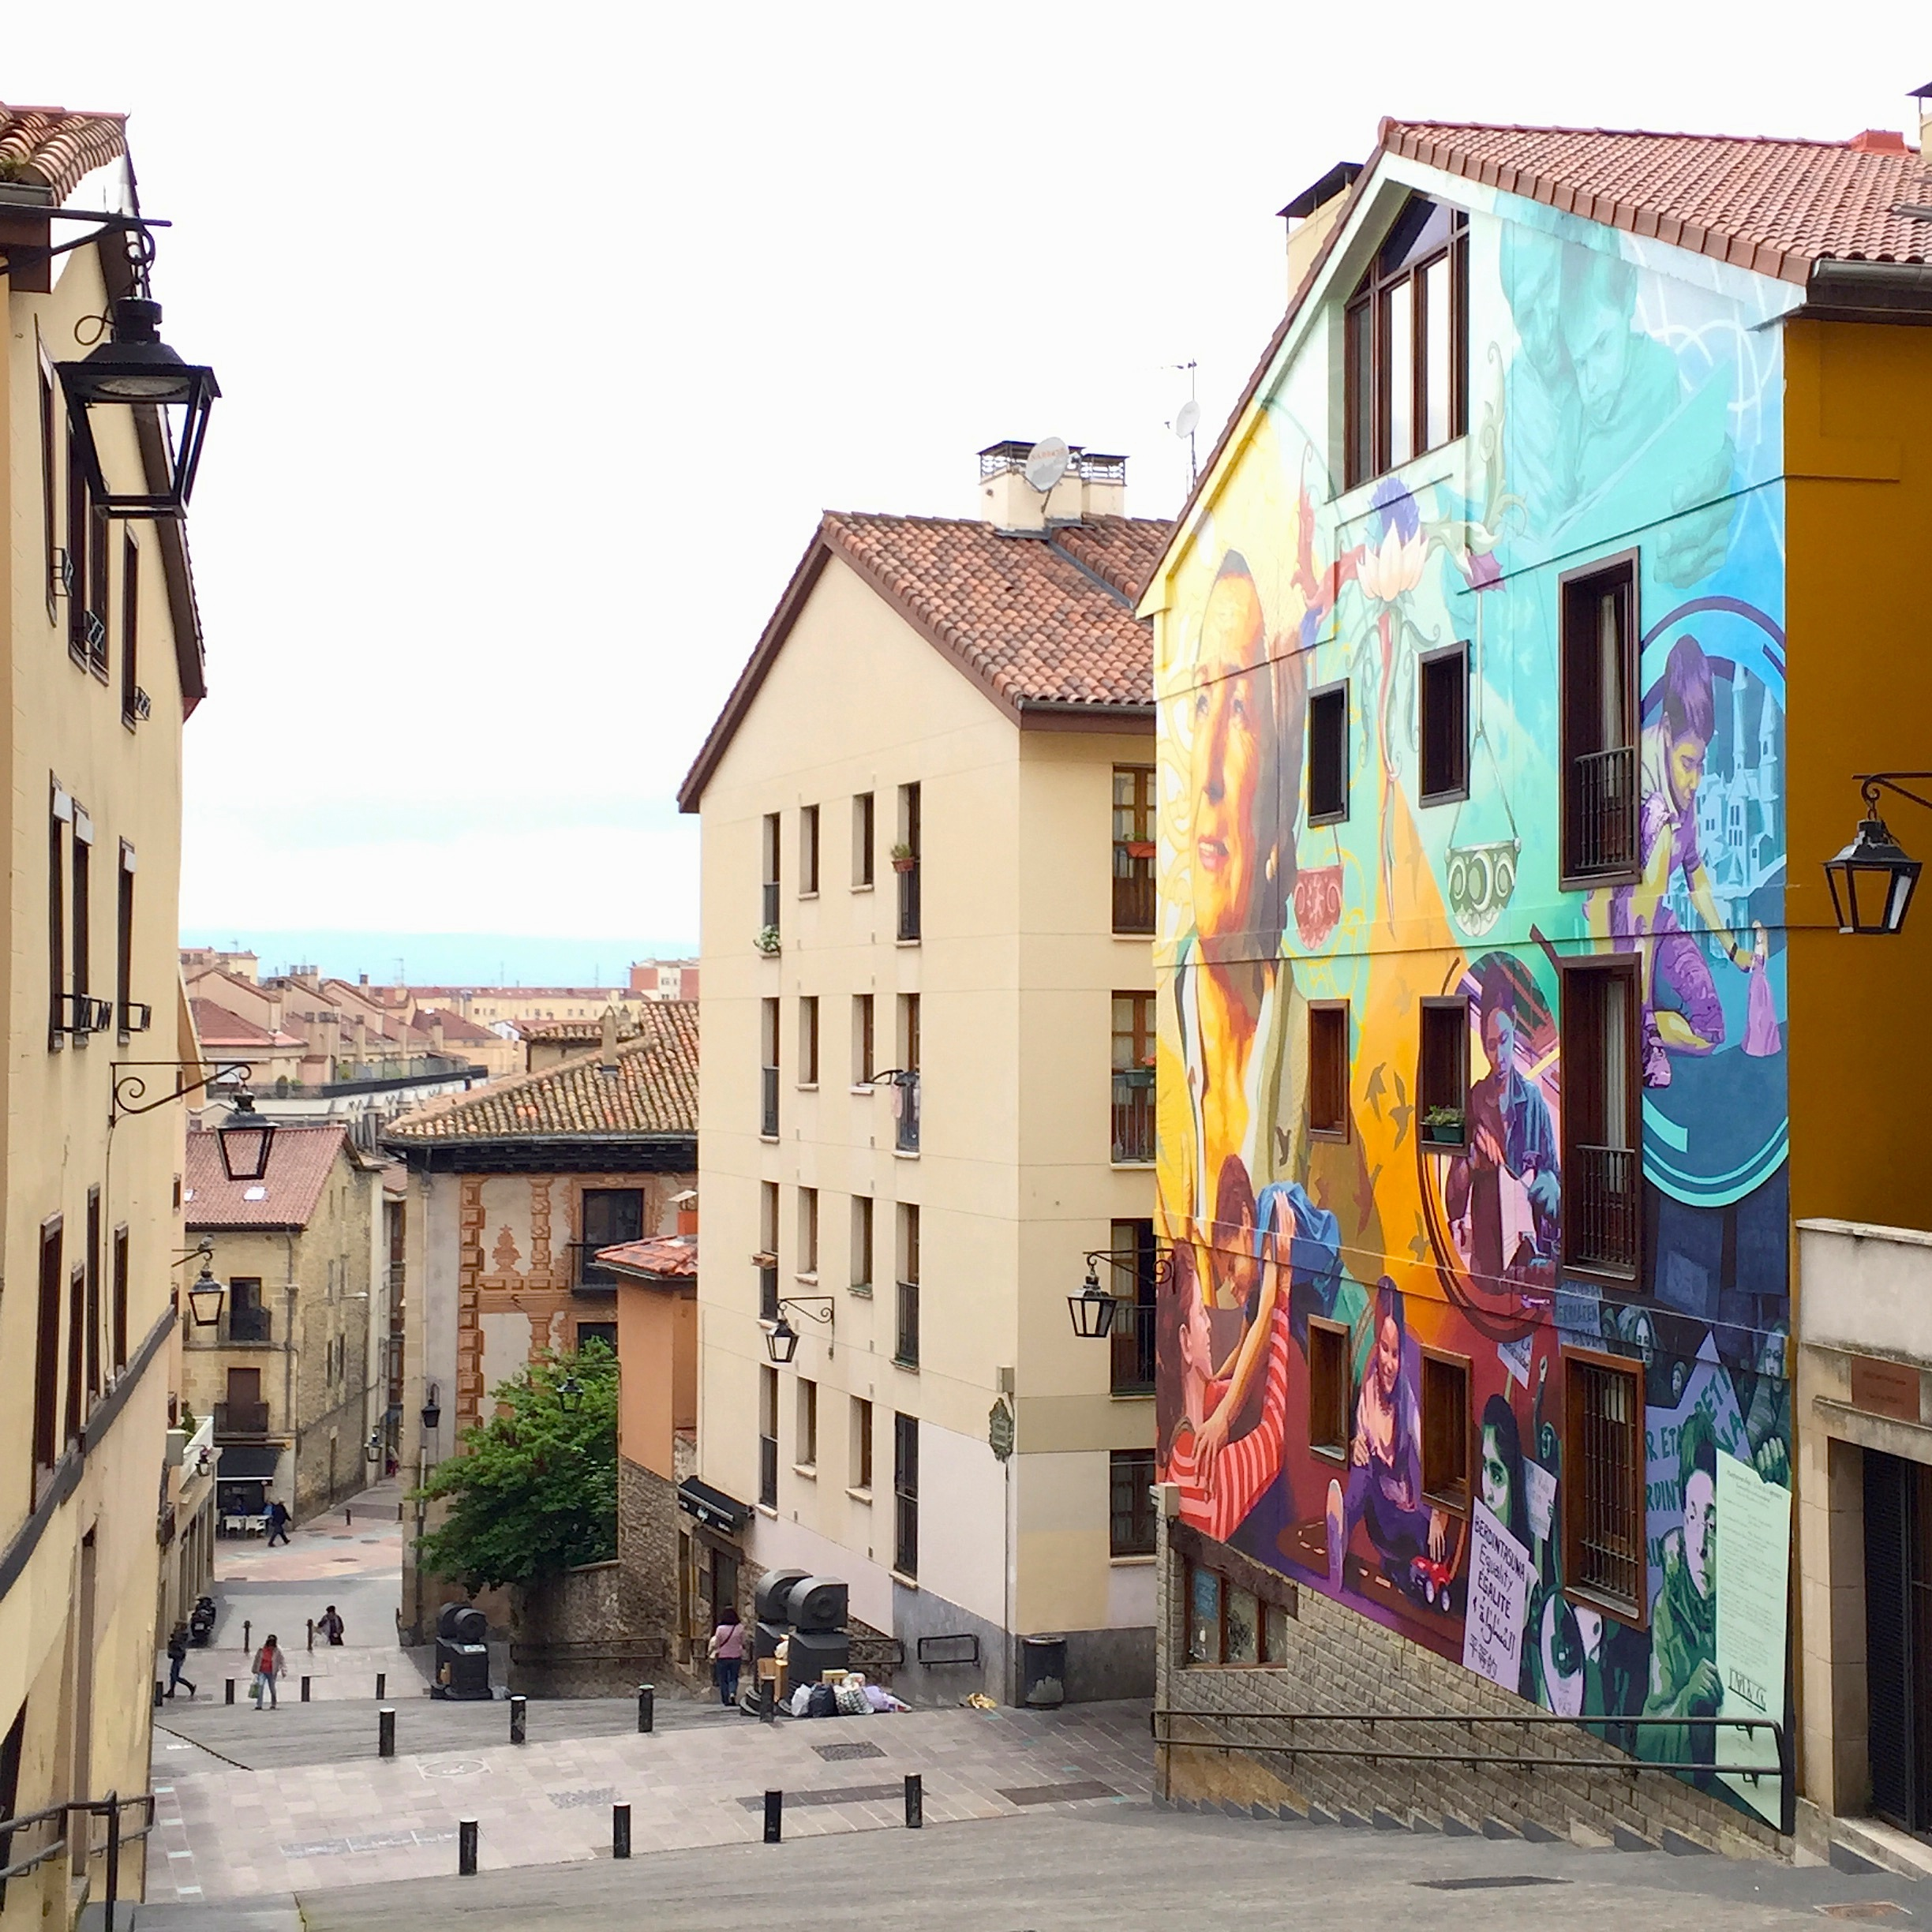 My Contender for Europe's Top Secret Destination is (shhhh) Vitoria-Gasteiz!